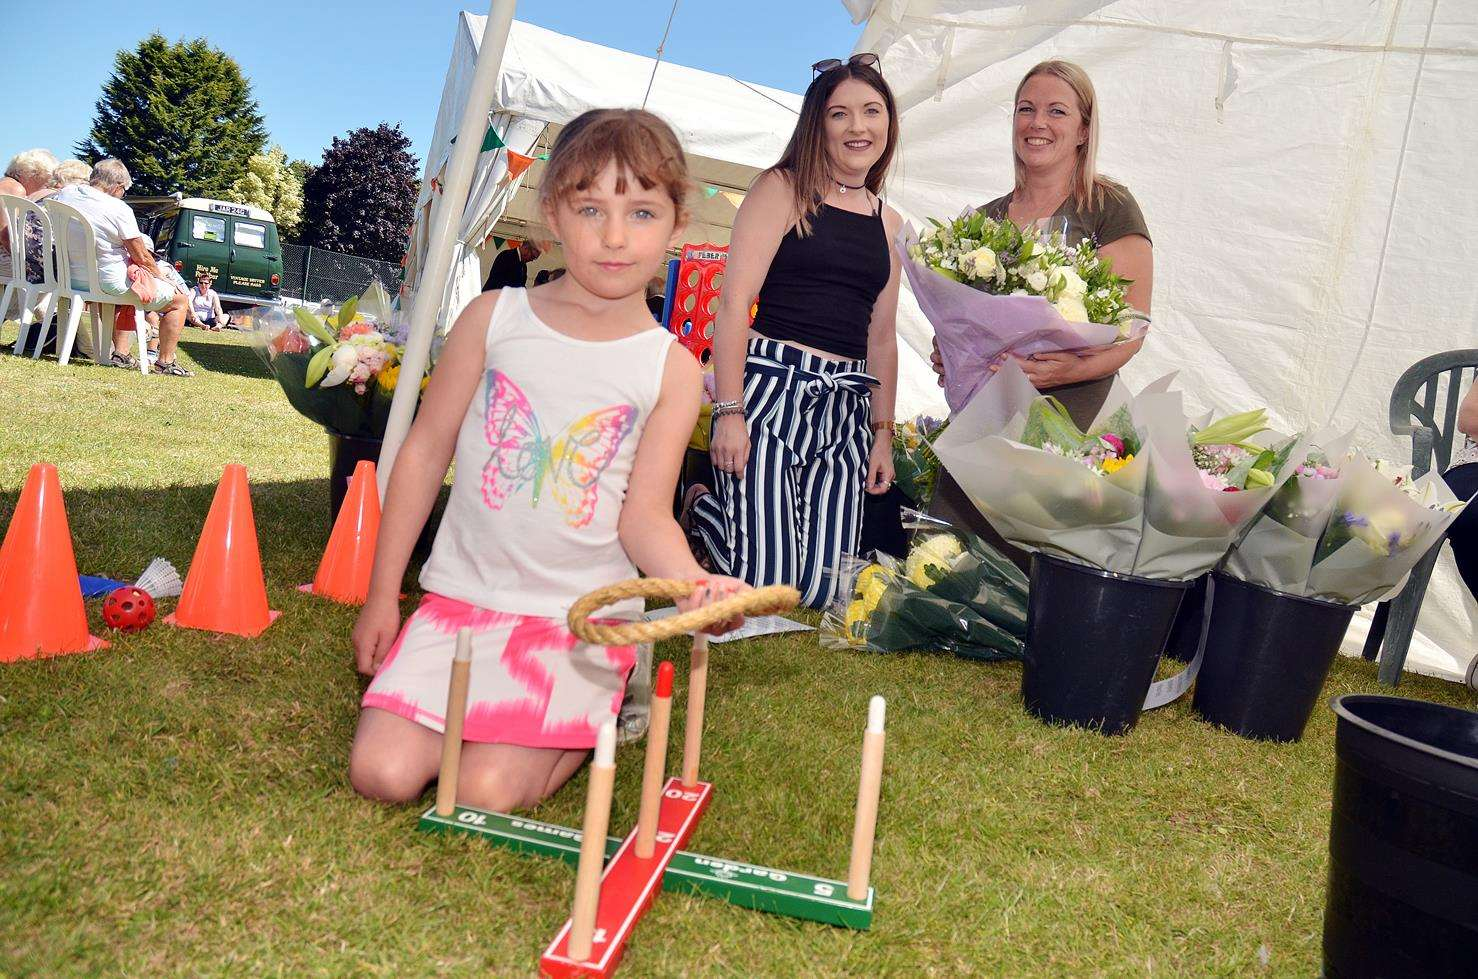 This year's Holbeach Food Festival at Carter's Park where Ruby Dewhirst, Abbey and Kelly Wilson are at the Friends of Holbeach Parks stand. Photo by Tim Wilson. 300618147SG